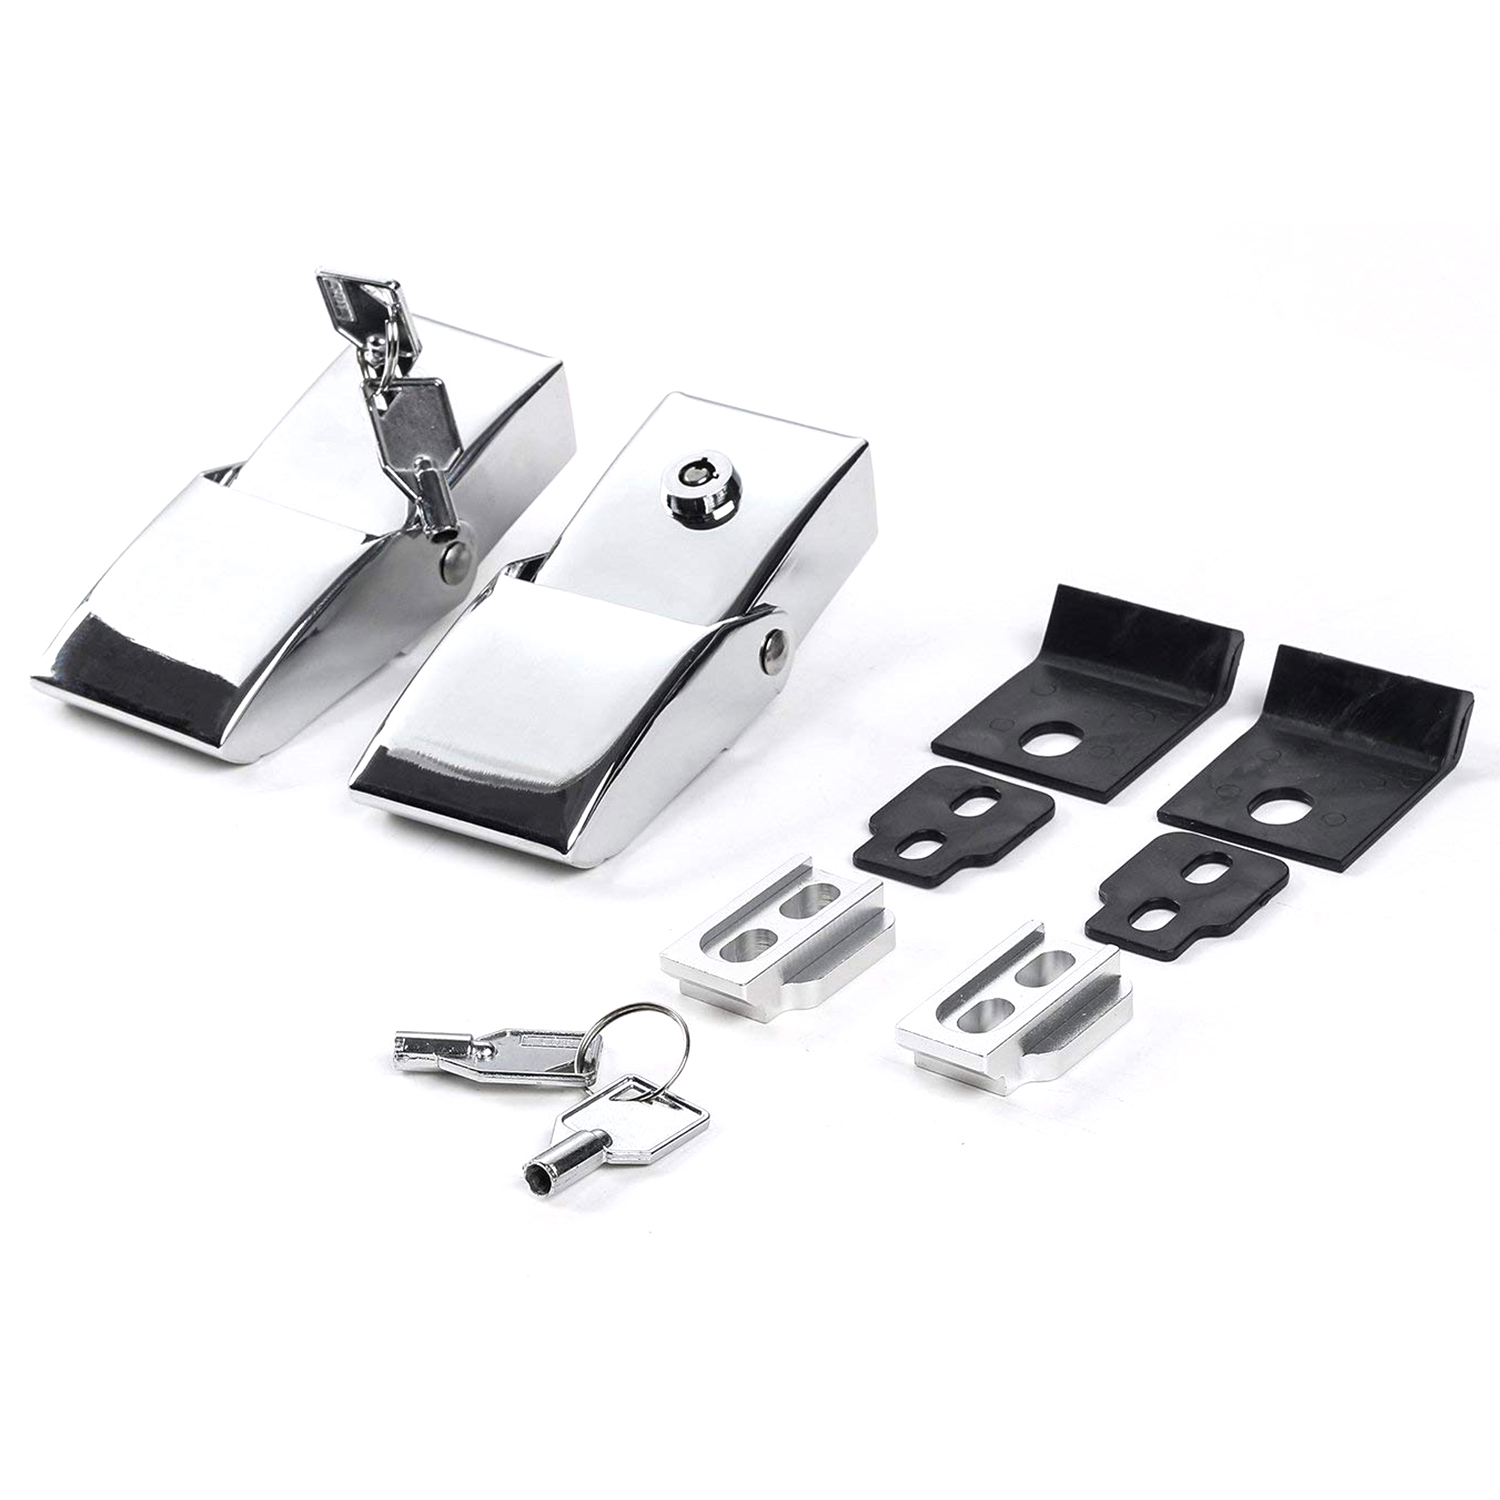 BIFI-Electroplating Machine lid lock engine Stainless steel + aluminum alloy tower buckle Wrangler engine lock buckle with loc